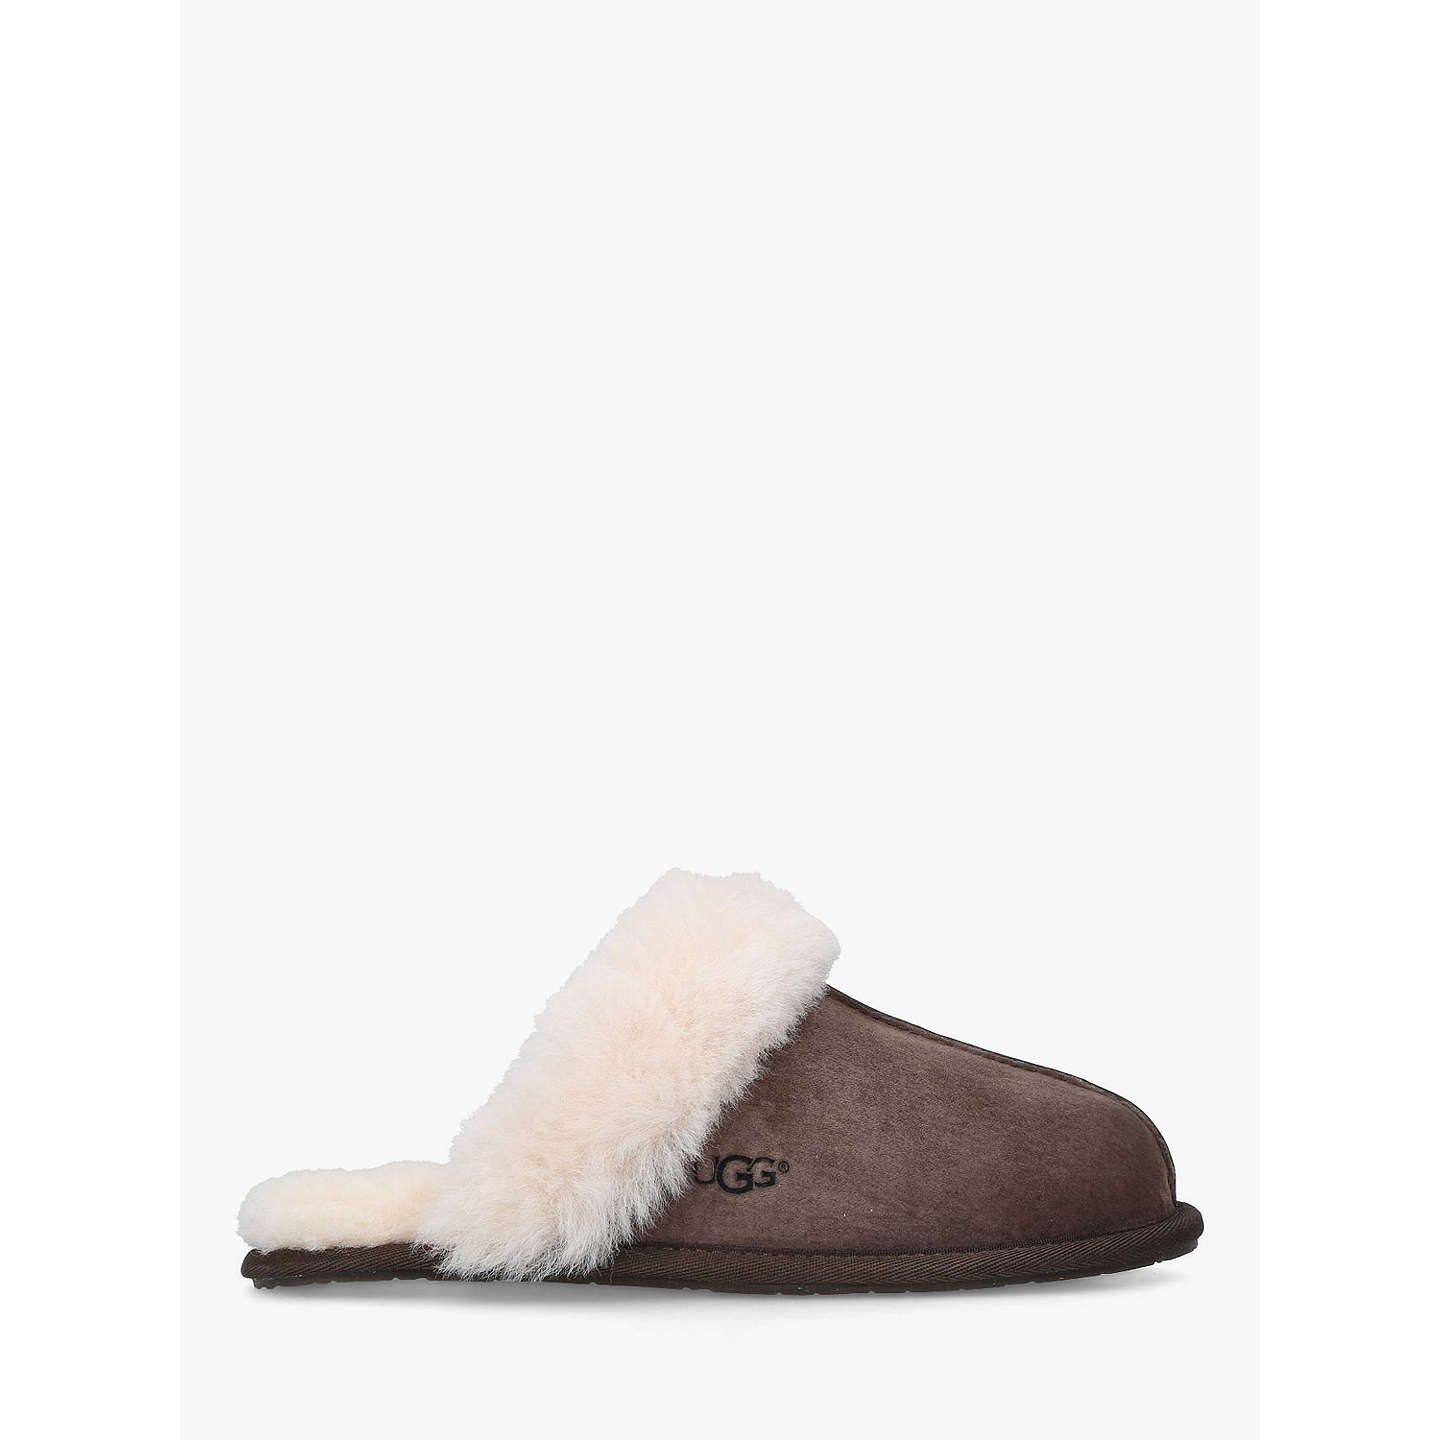 BuyUGG Scuffette II Sheepskin Slippers, Dark Brown, 8 Online at johnlewis.com